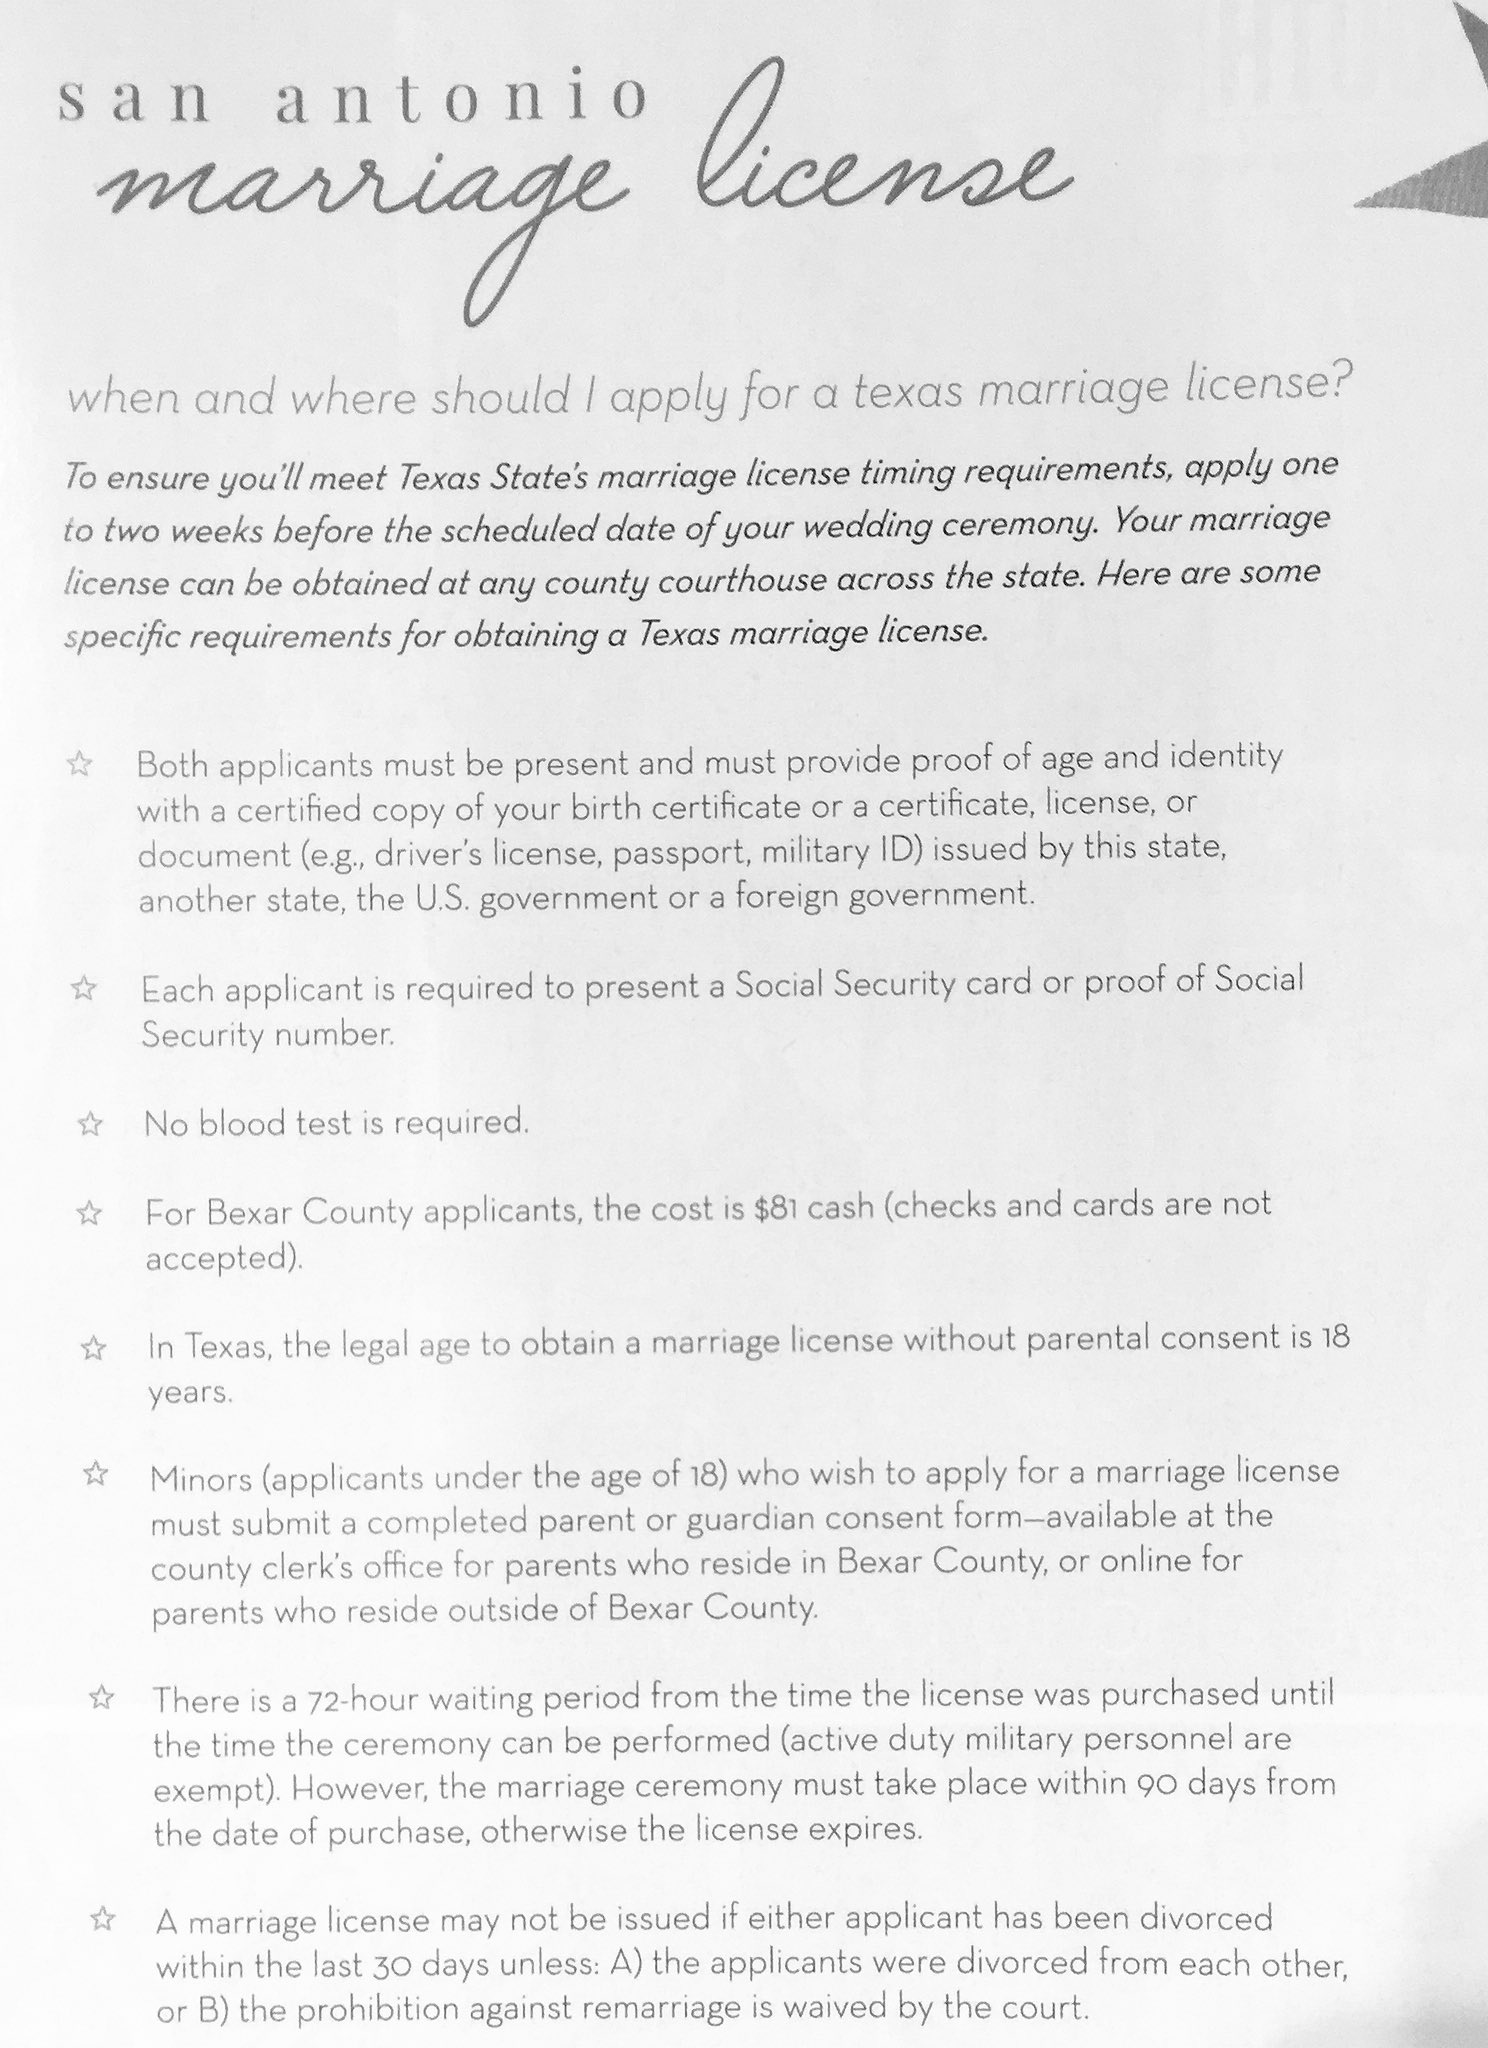 Bridal connection on twitter important facts about getting your bridal connection on twitter important facts about getting your marriage license in texas thanks to san antonio weddings magazine for the info aiddatafo Choice Image